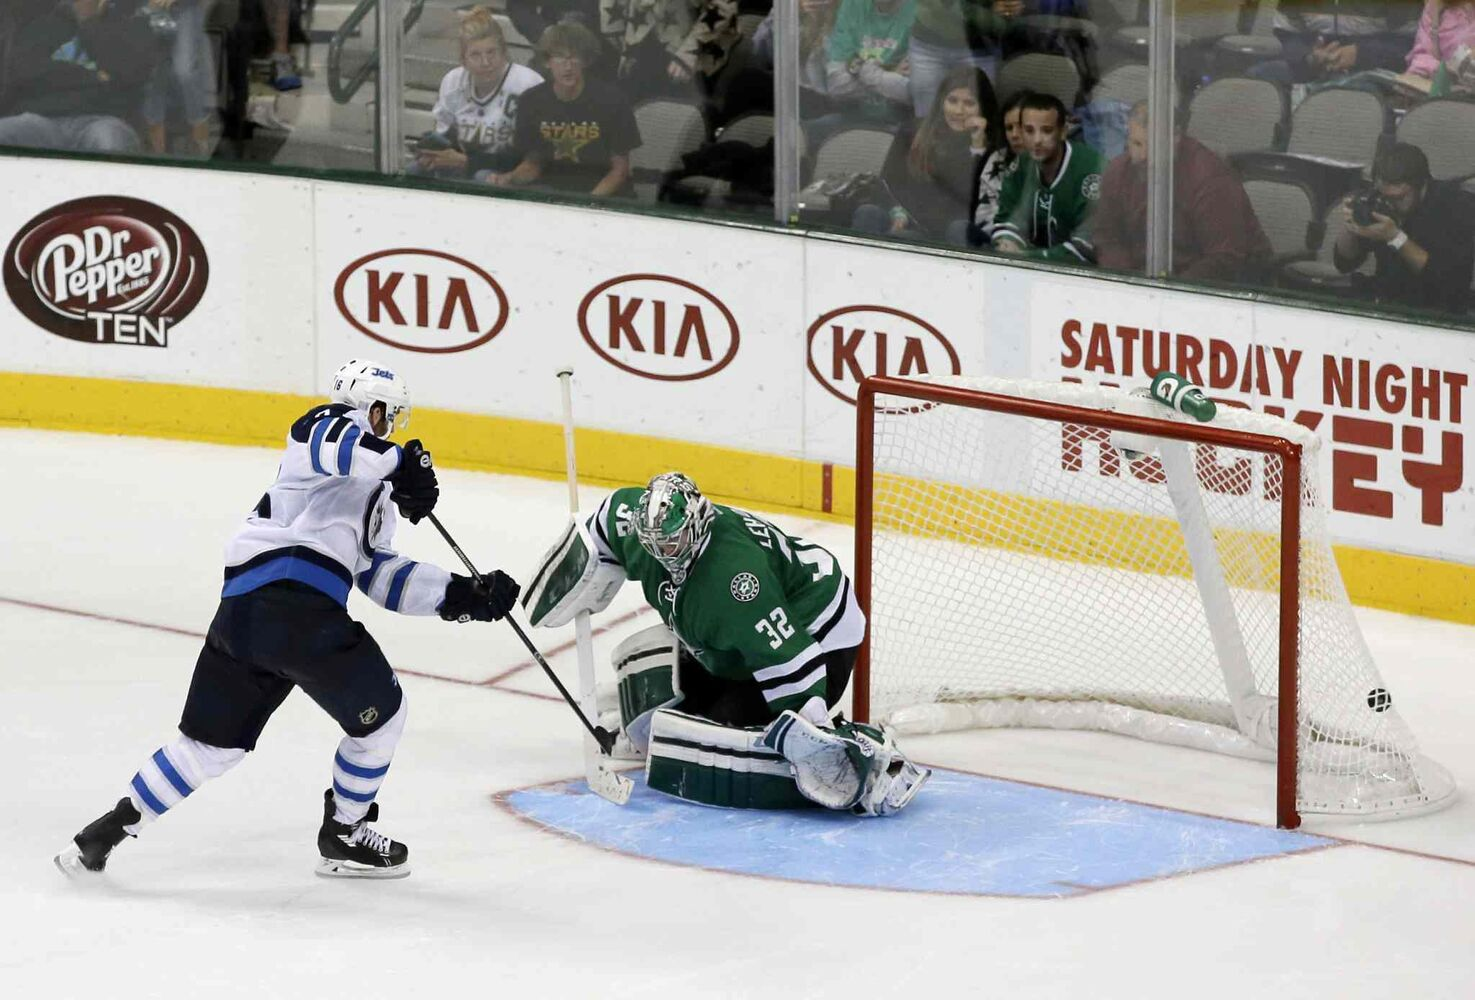 Andrew Ladd scores what would end up being the shootout-winning goal against Kari Lehtonen. (Tony Gutierrez / The Associated Press)